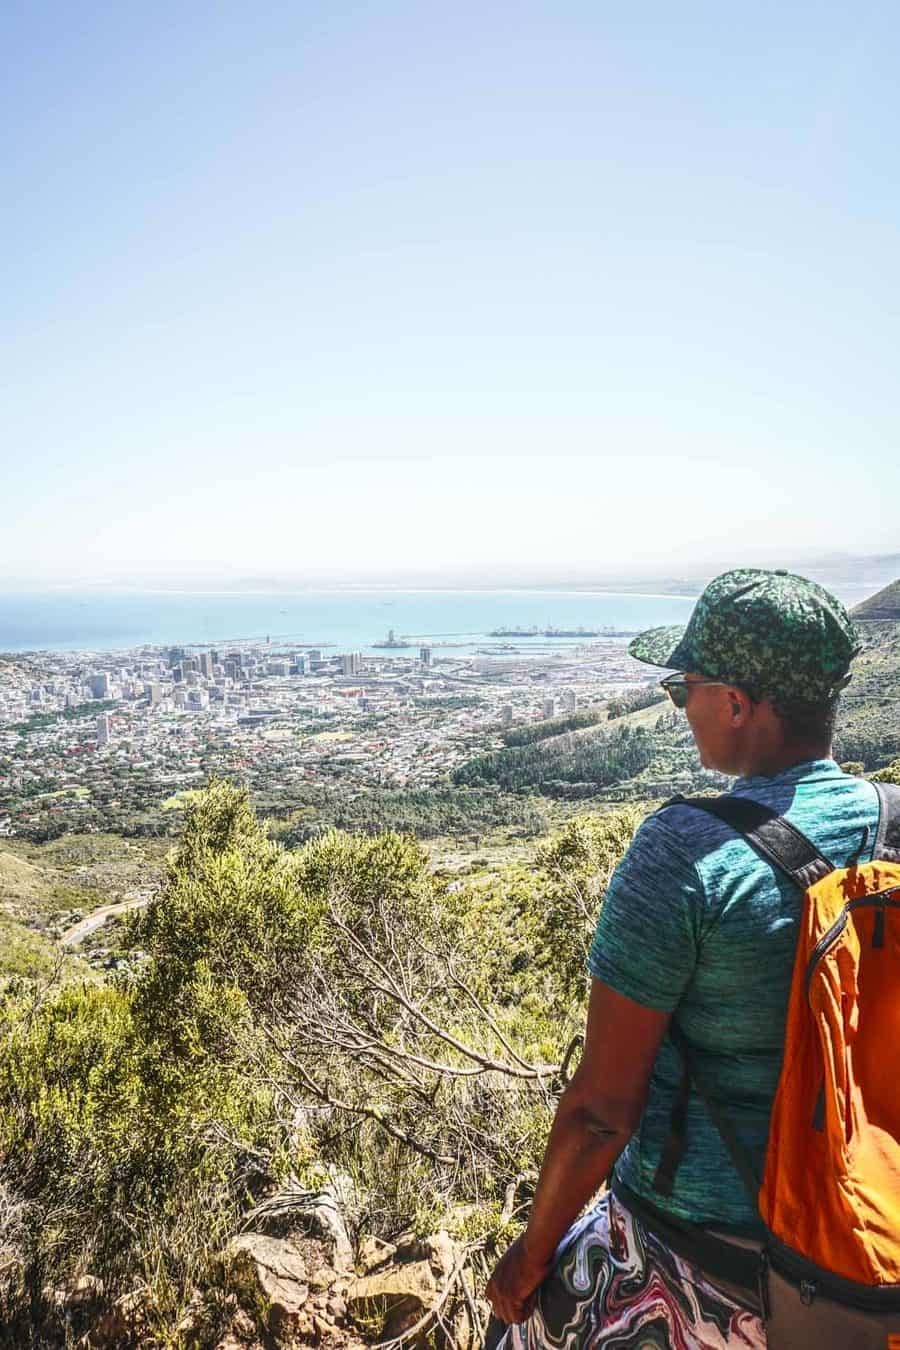 Hiking to the top of Table Mountain up Plattenklip Gorge